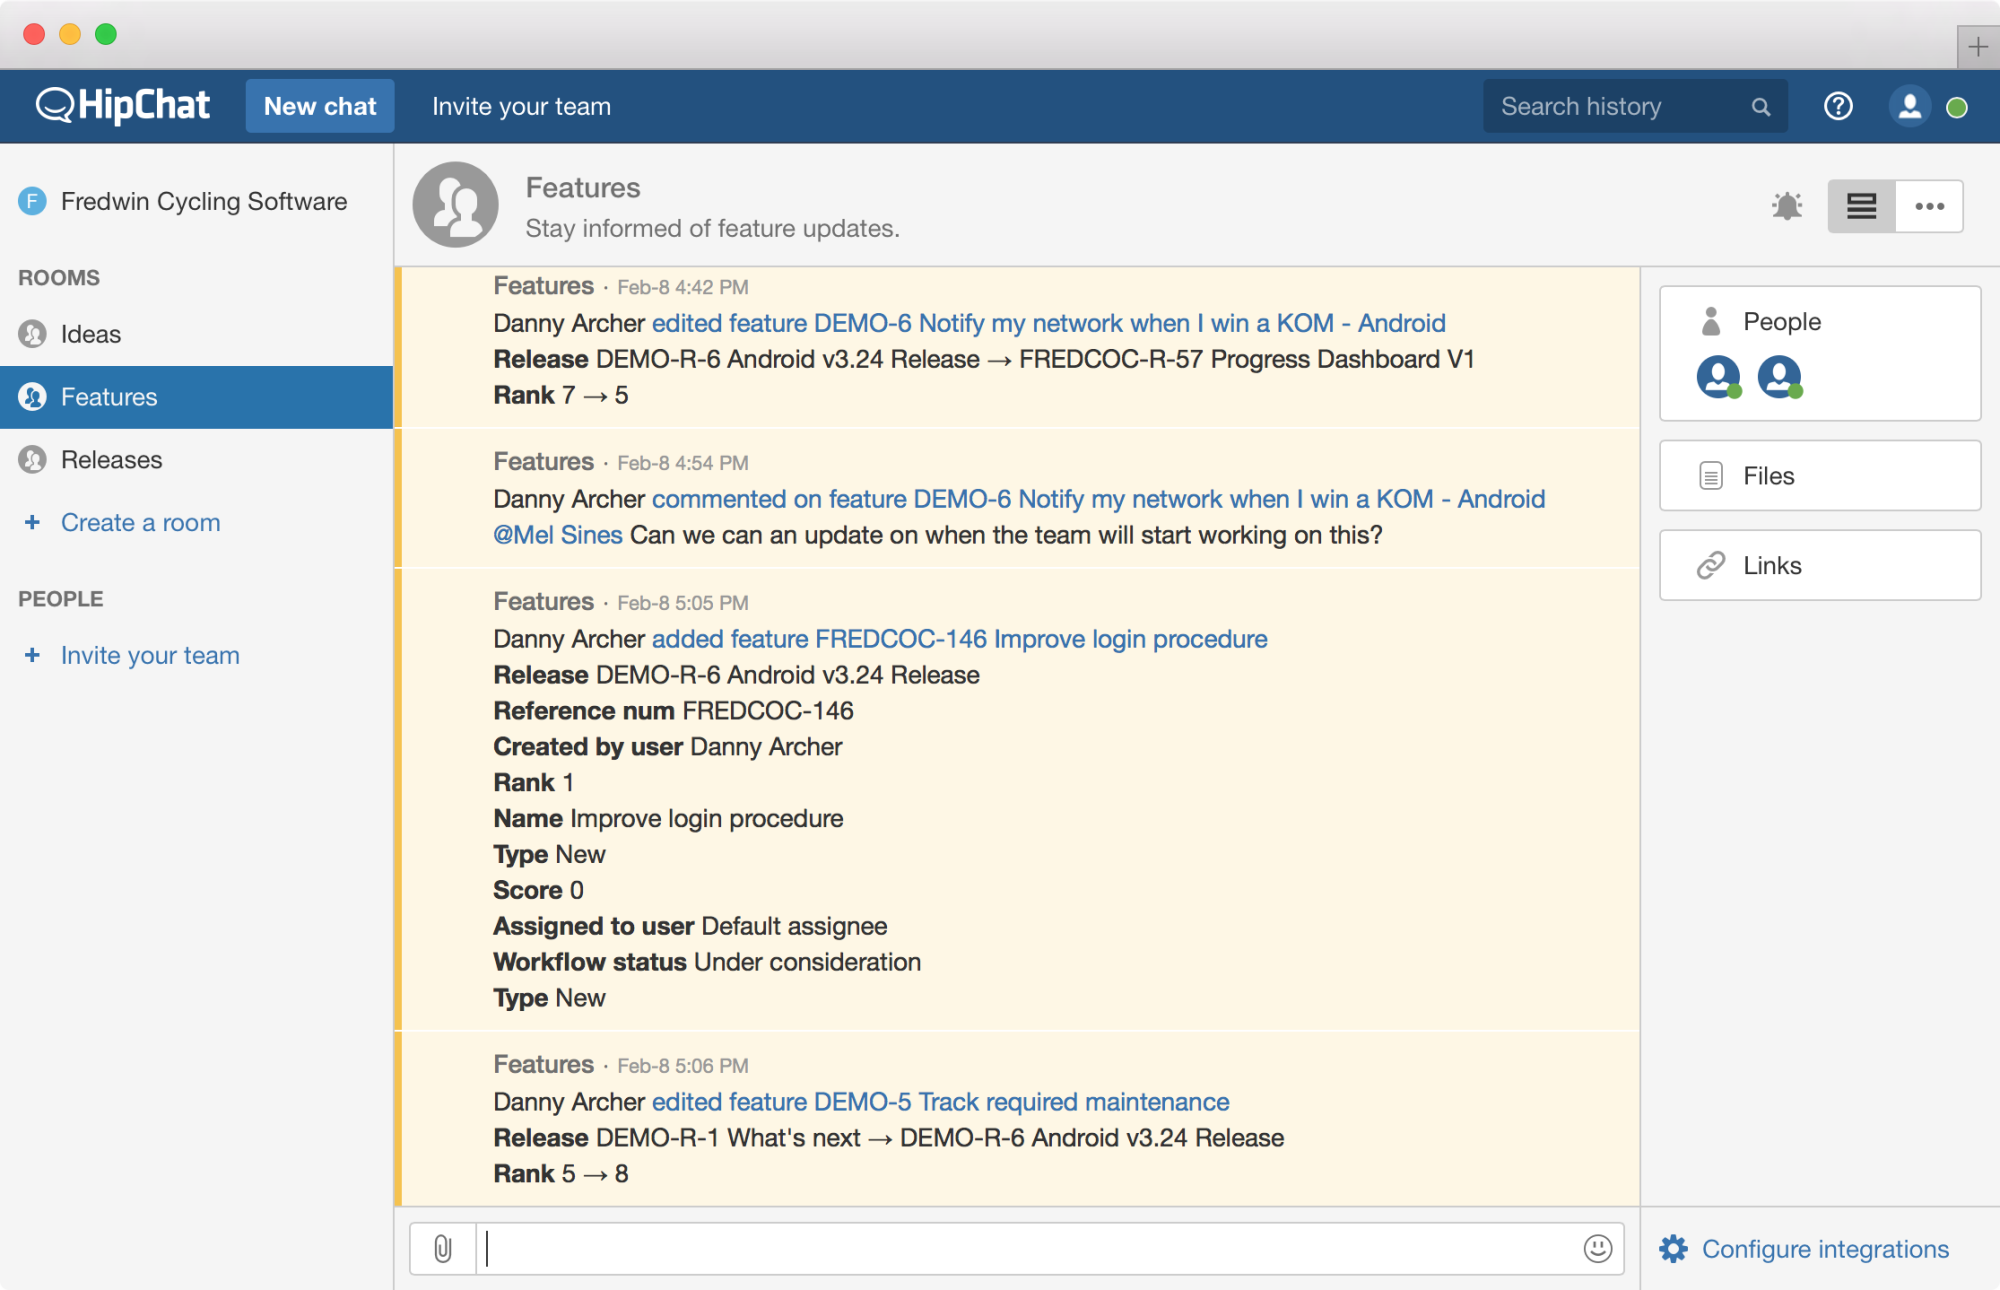 Blog - Just Launched! — Aha! Integrated With Atlassian HipChat Cloud and Server - inline image